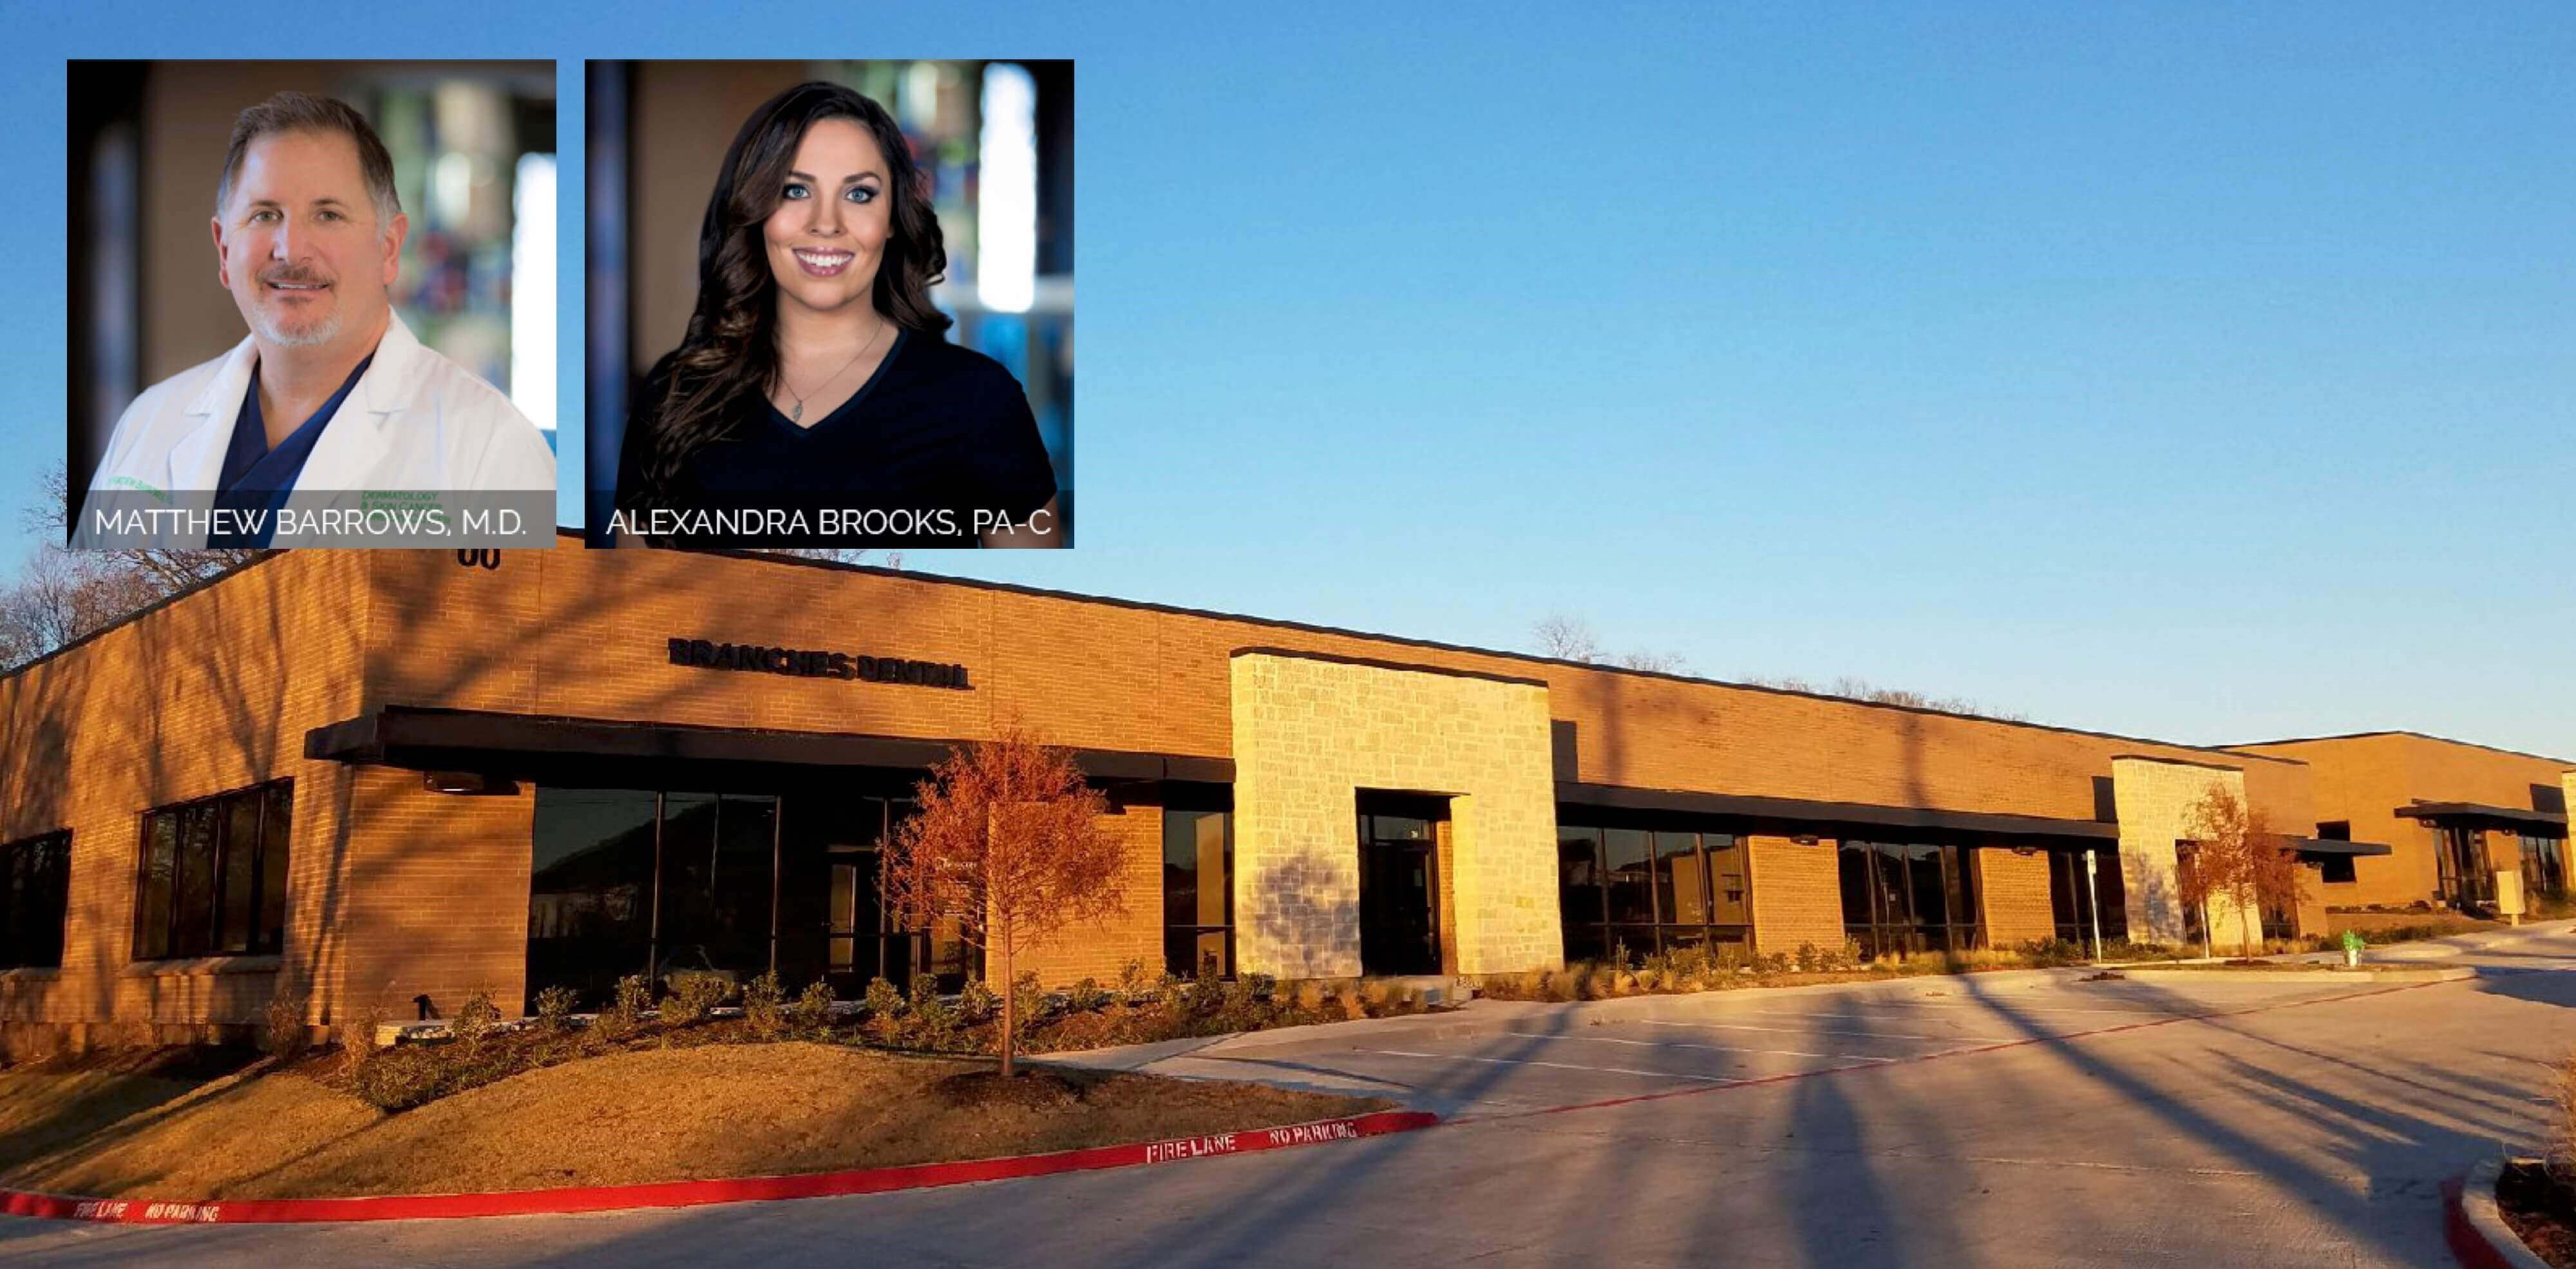 Our Anna Location has moved - Alexandra Brooks is now seeing patients at our new Anna office. The new office is located off White Street just east of US Highway 75.